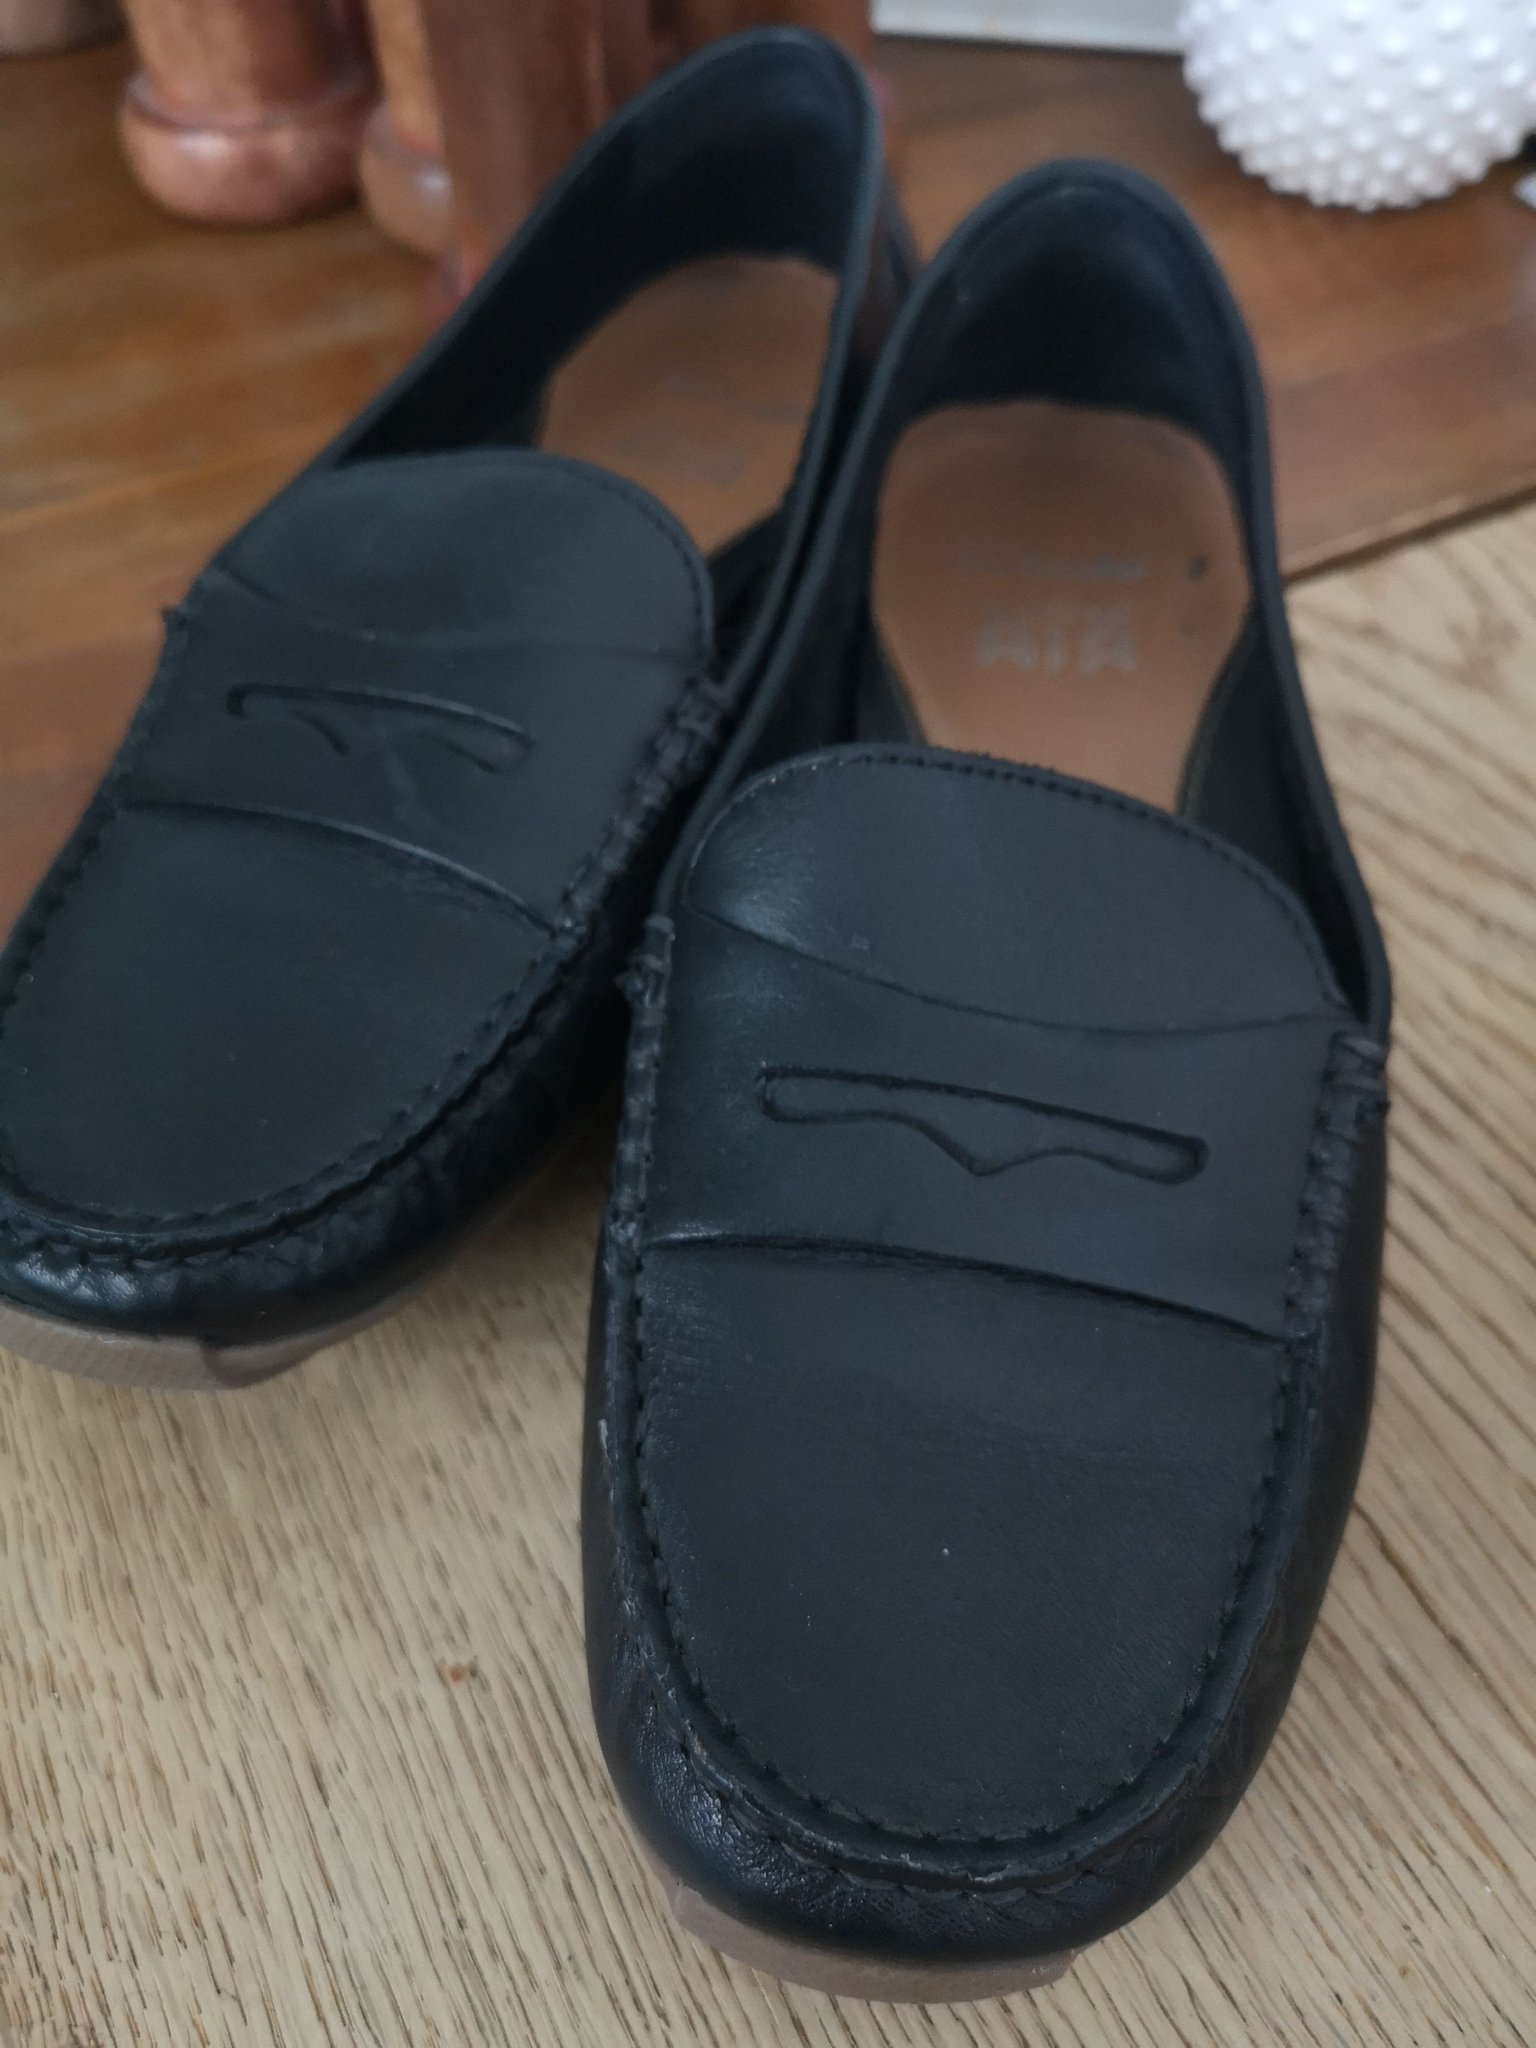 Clarks Air loafers stl 5 (uk) ca 37